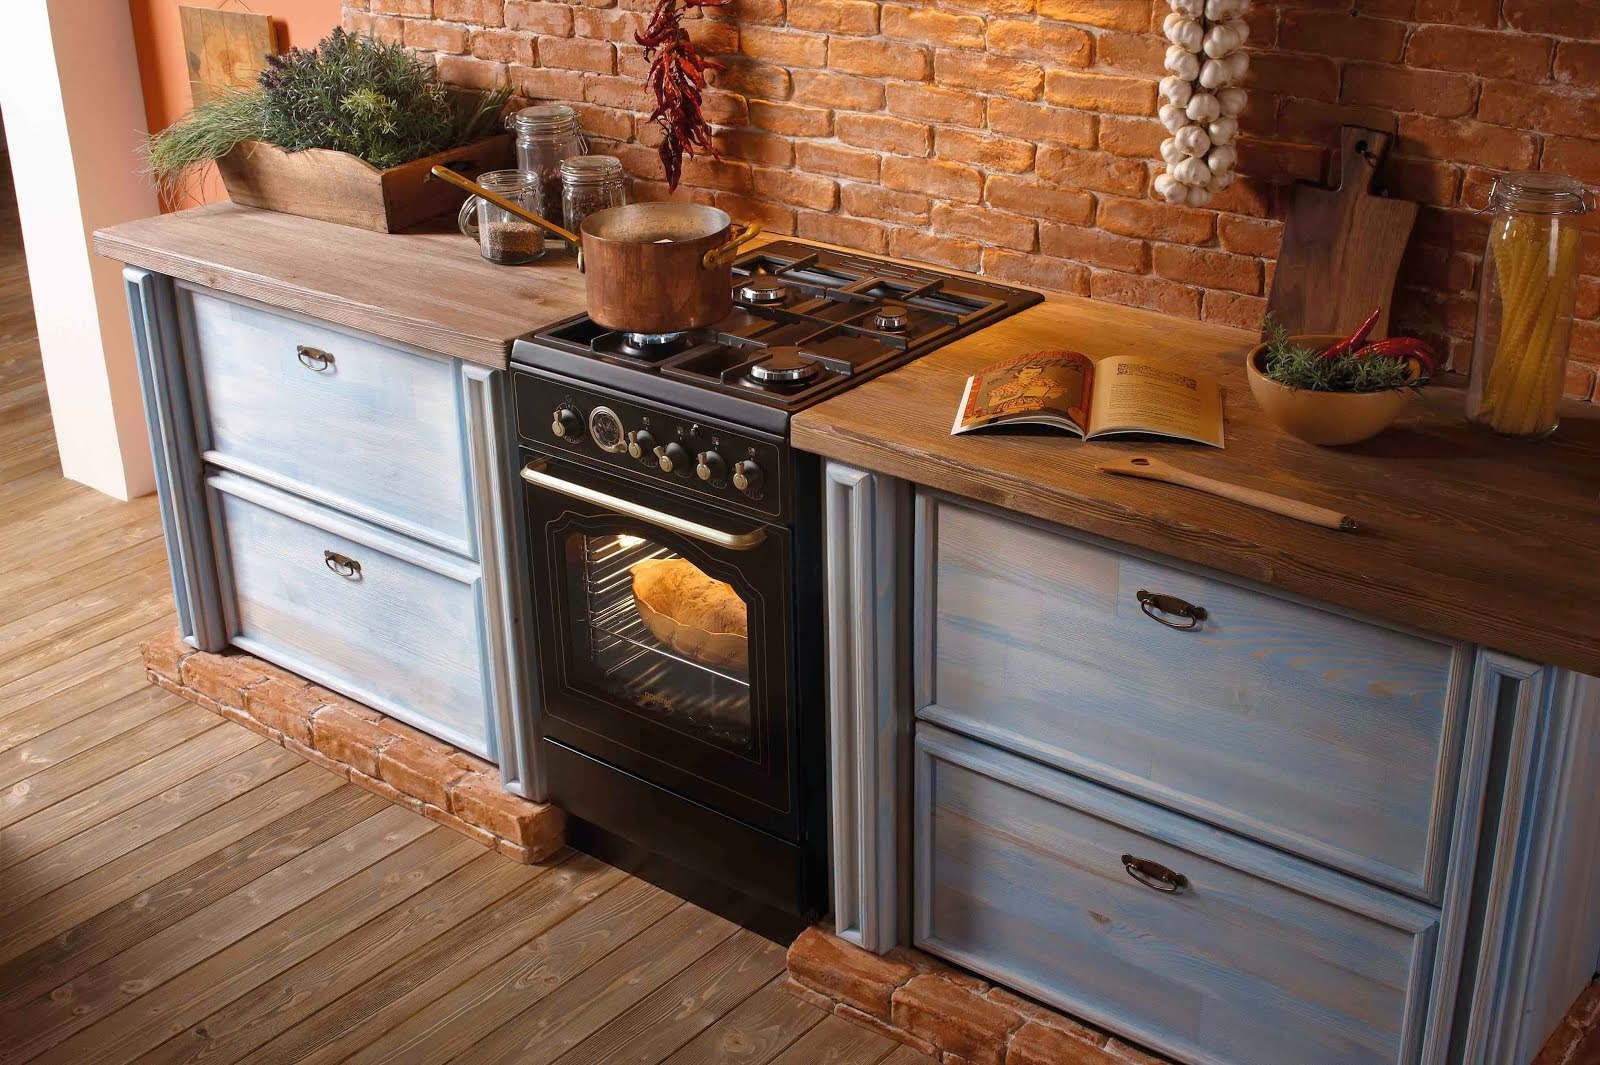 Awesome cucine free standing images ideas design 2017 - Cucine a gas ikea ...